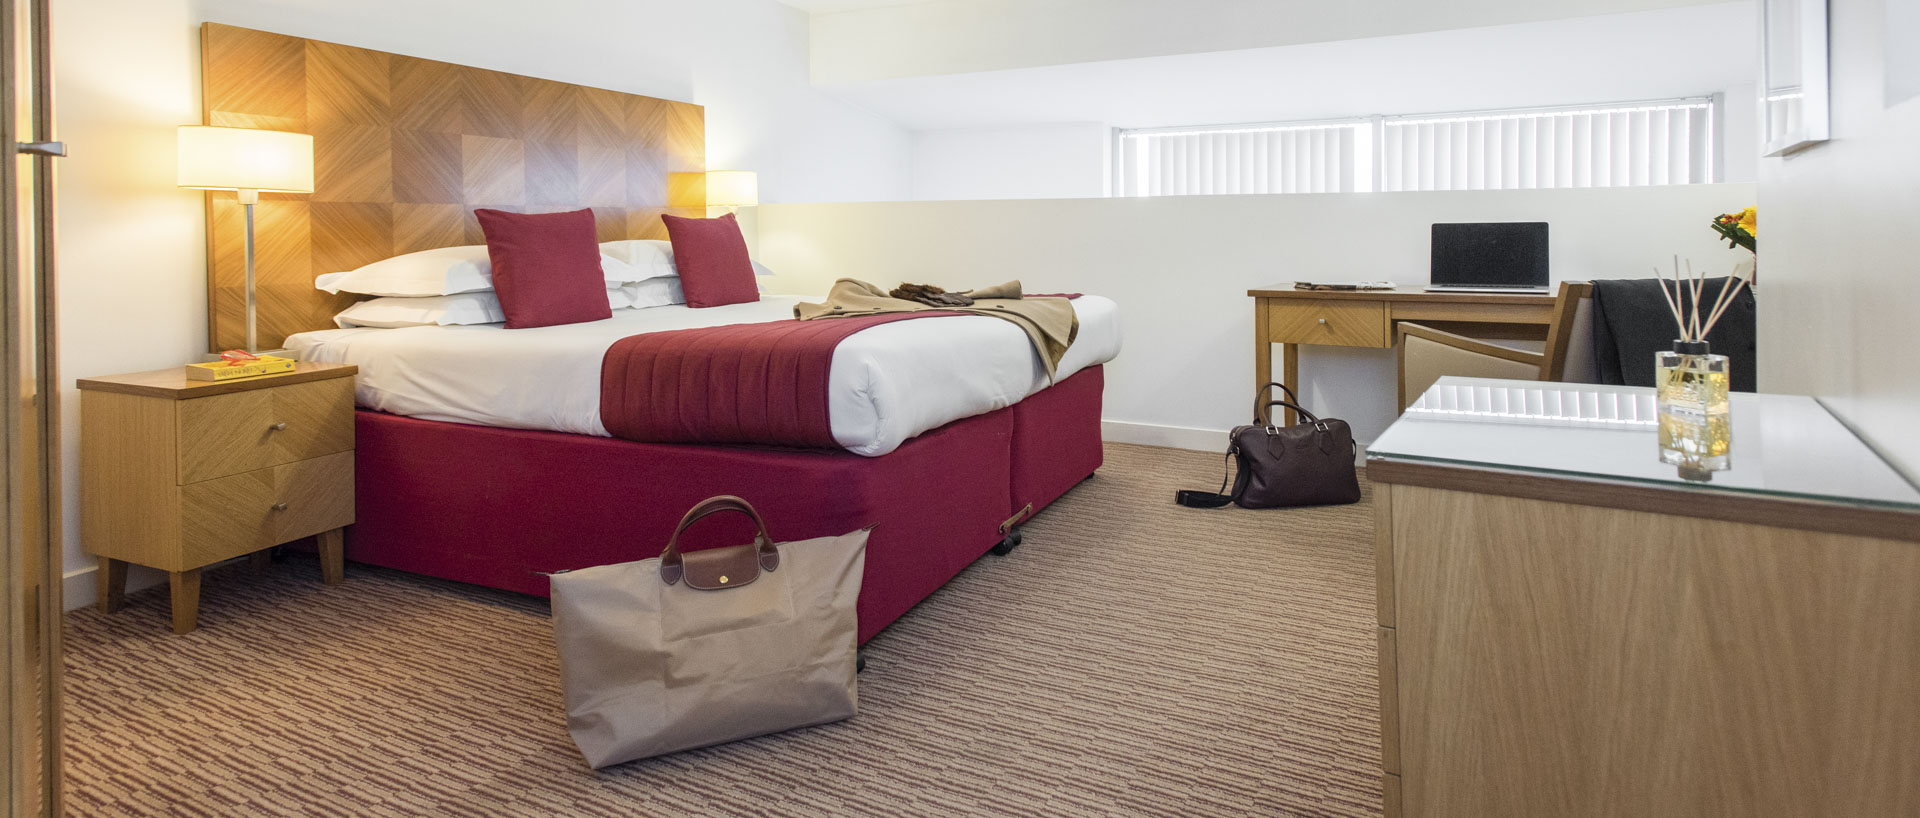 PREMIER SUITES Liverpool corporate guests bedroom